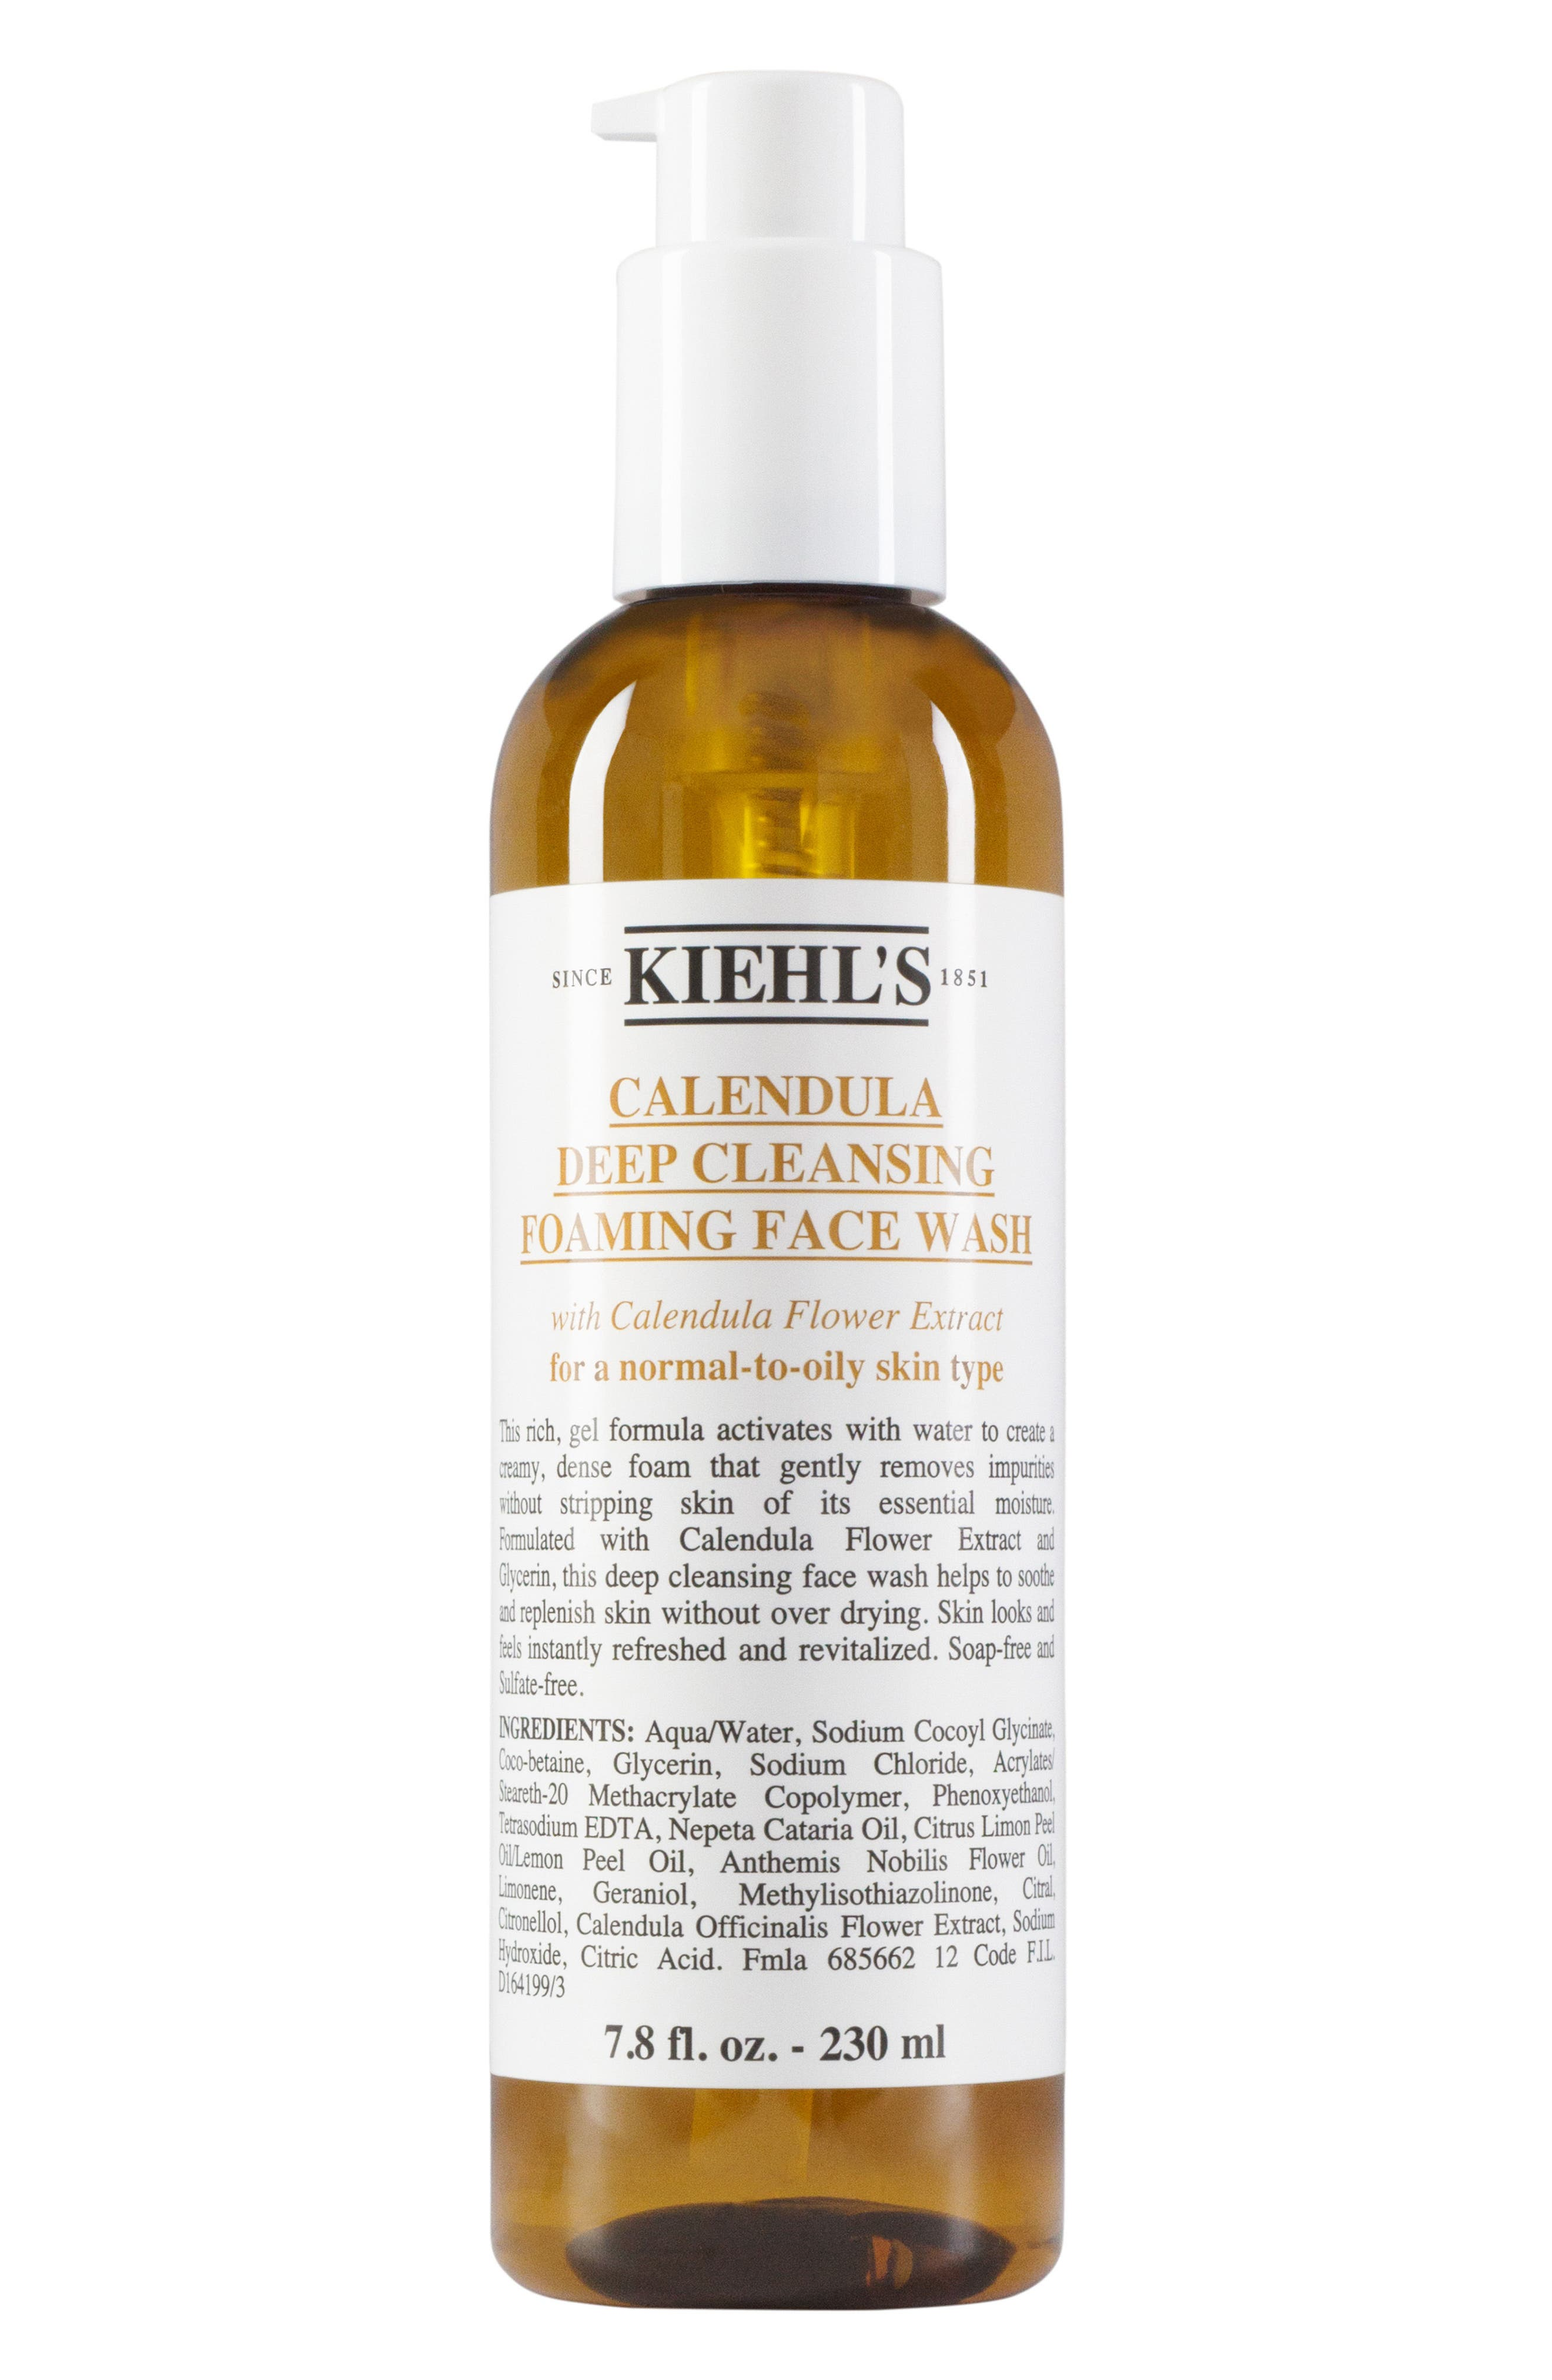 Calendula Deep Cleansing Foaming Face Wash for Normal-to-Oily Skin,                         Main,                         color, No Color